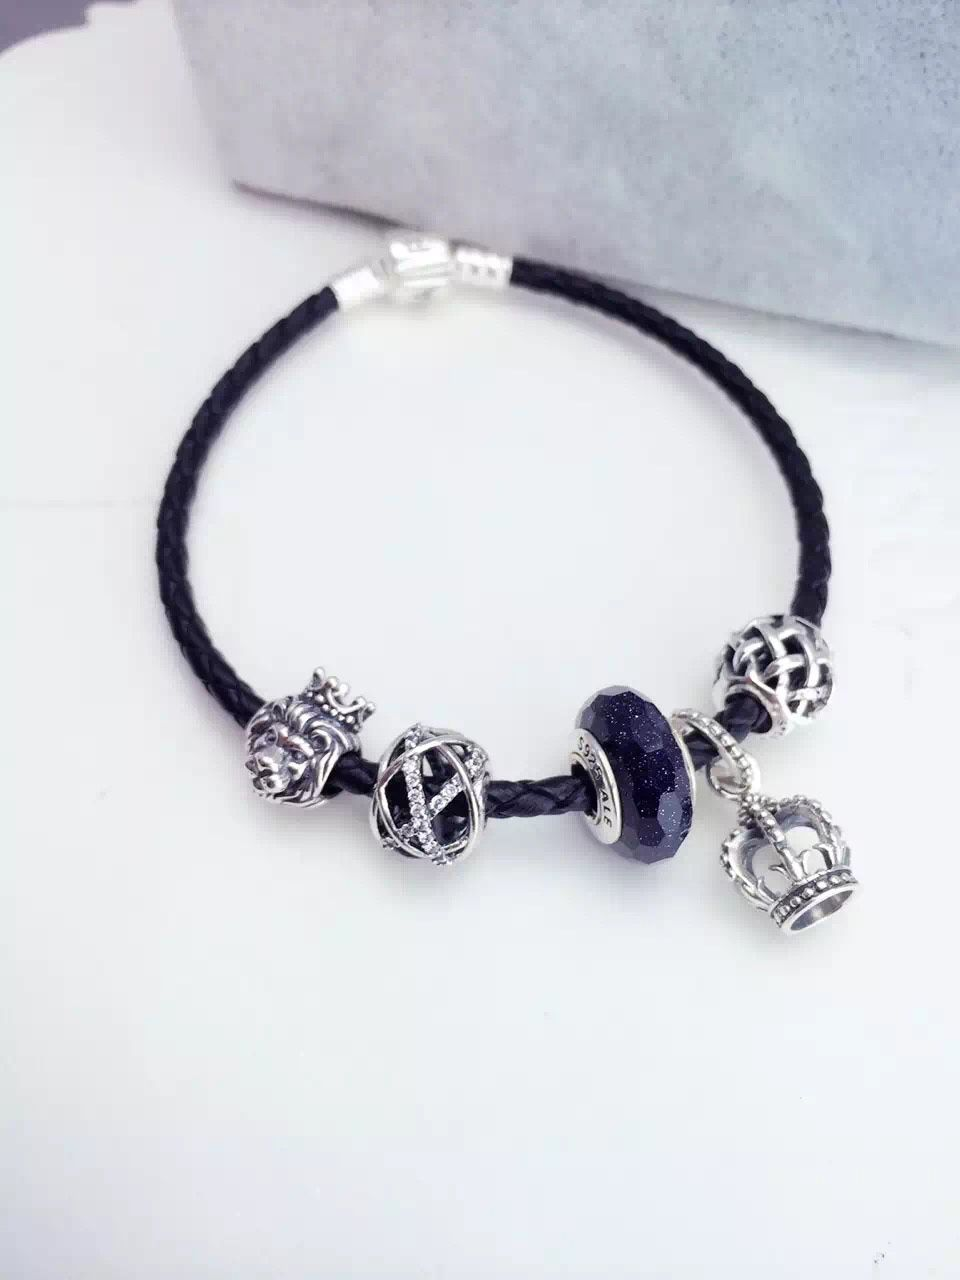 $159 Pandora Leather Charm Bracelet Black Hot Sale!